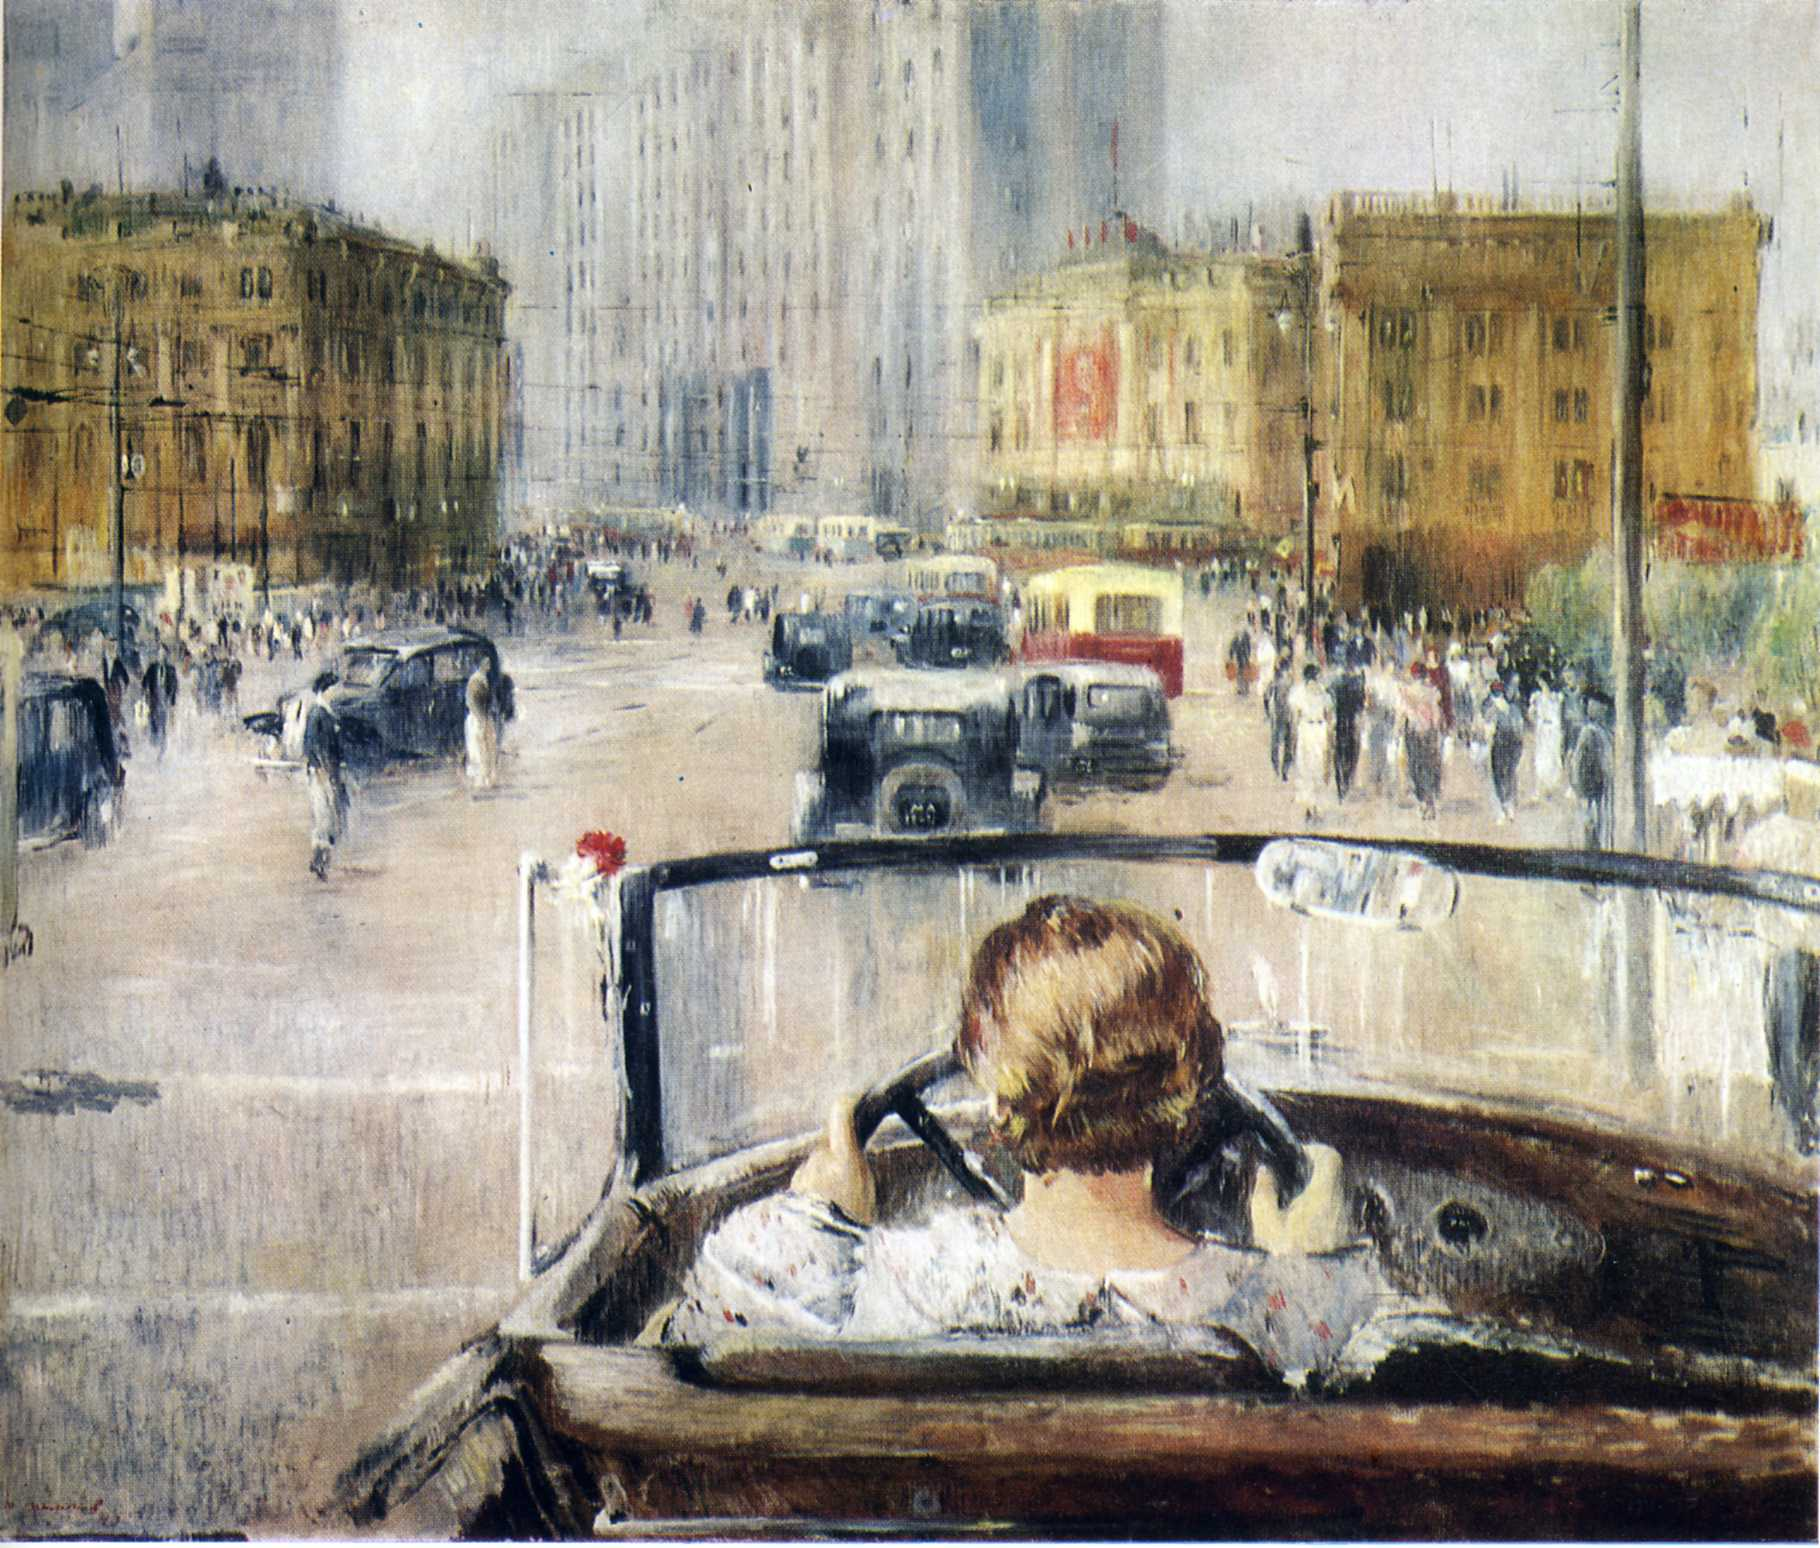 http://www.vertice.ca/wp-content/uploads/Pimenov-NewMoscow.jpg